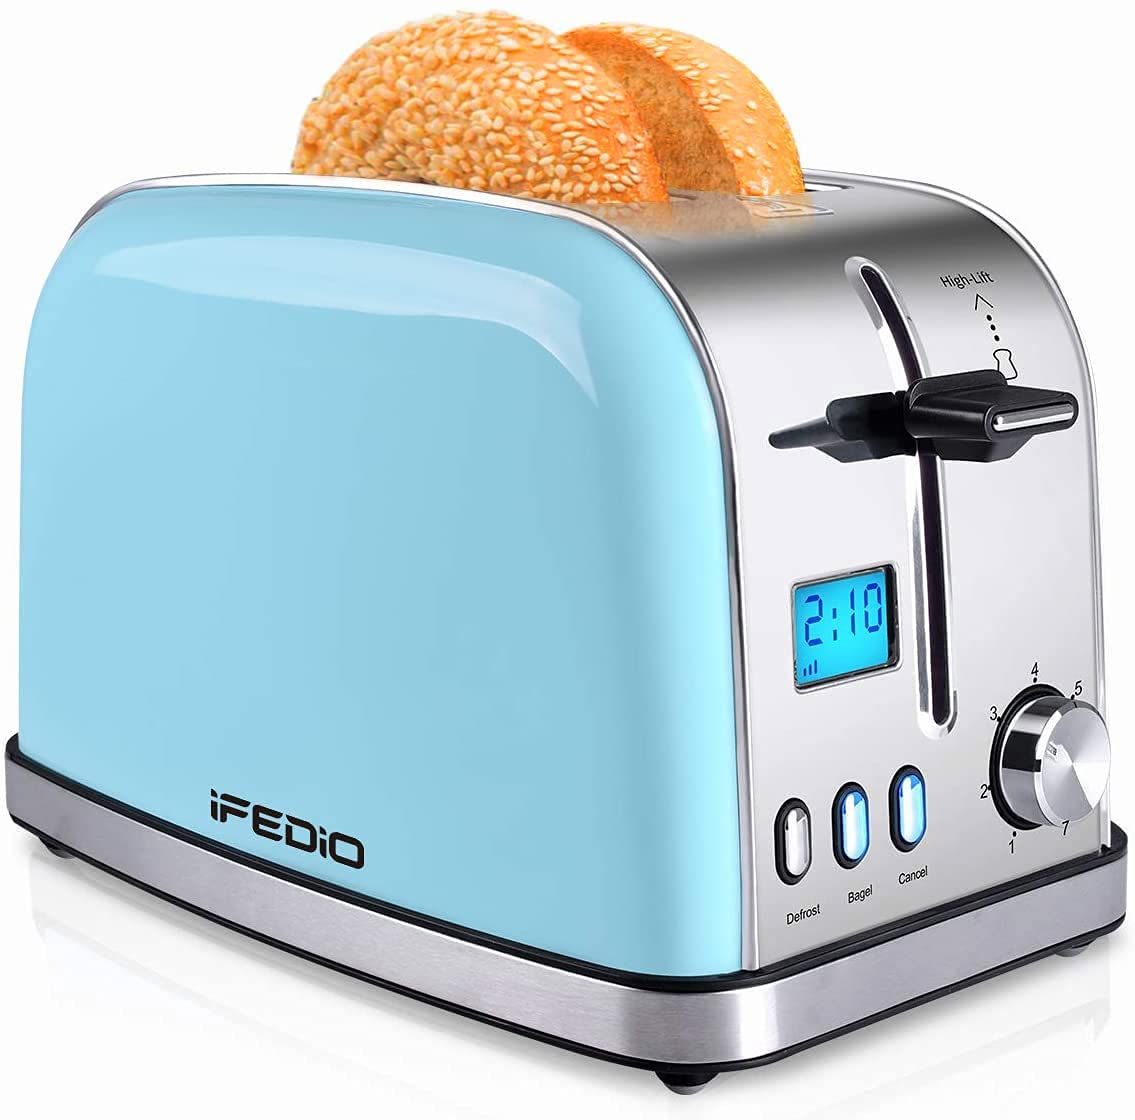 iFedio Compact LCD Display Pop-Up Toaster, 2-Slice